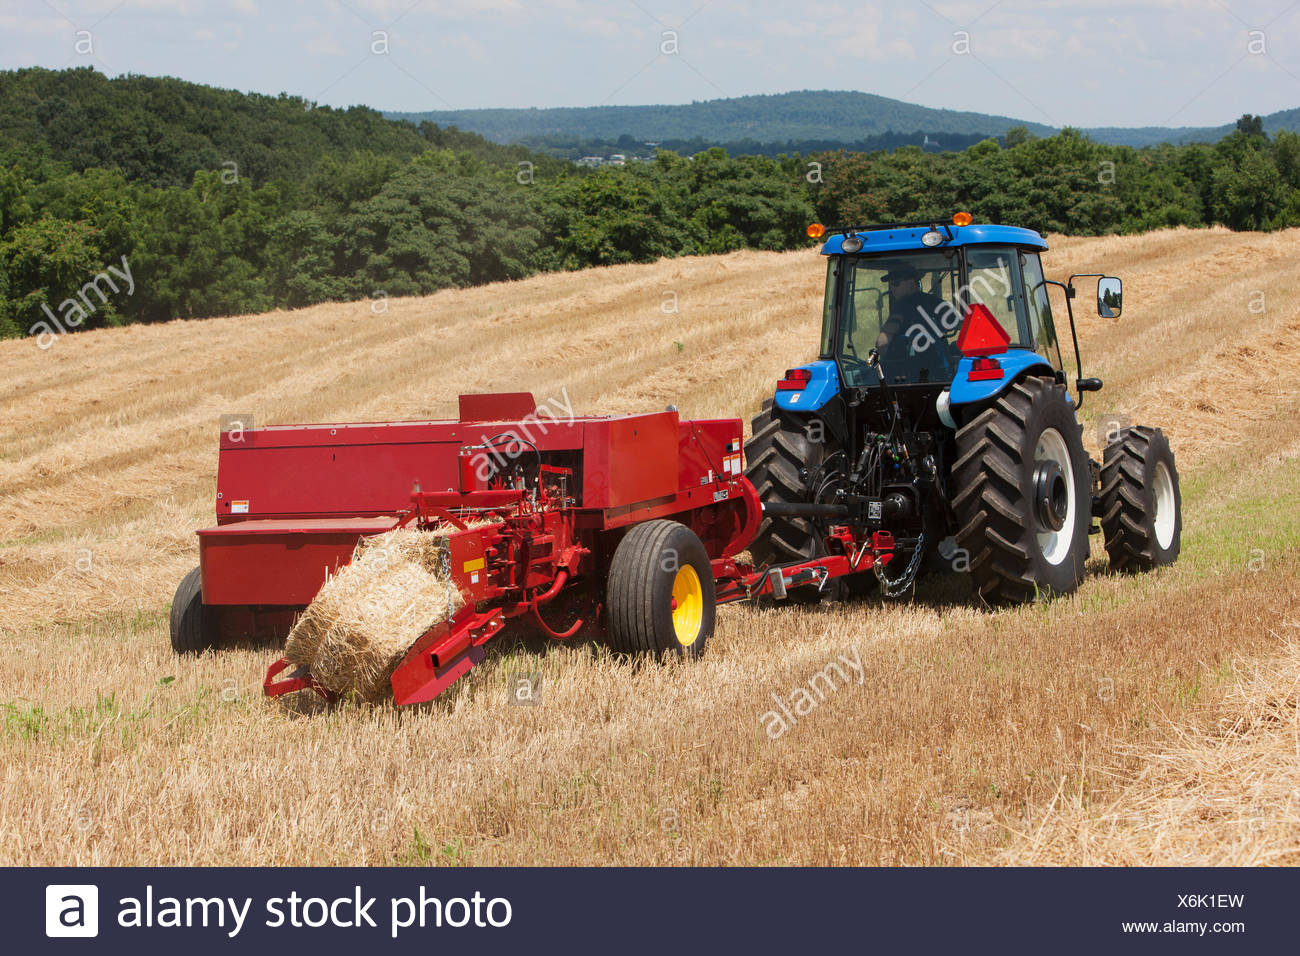 New Holland TD5050 with BC5070 square baler baling wheat straw for bedding;  Lititz, Pennsylvania